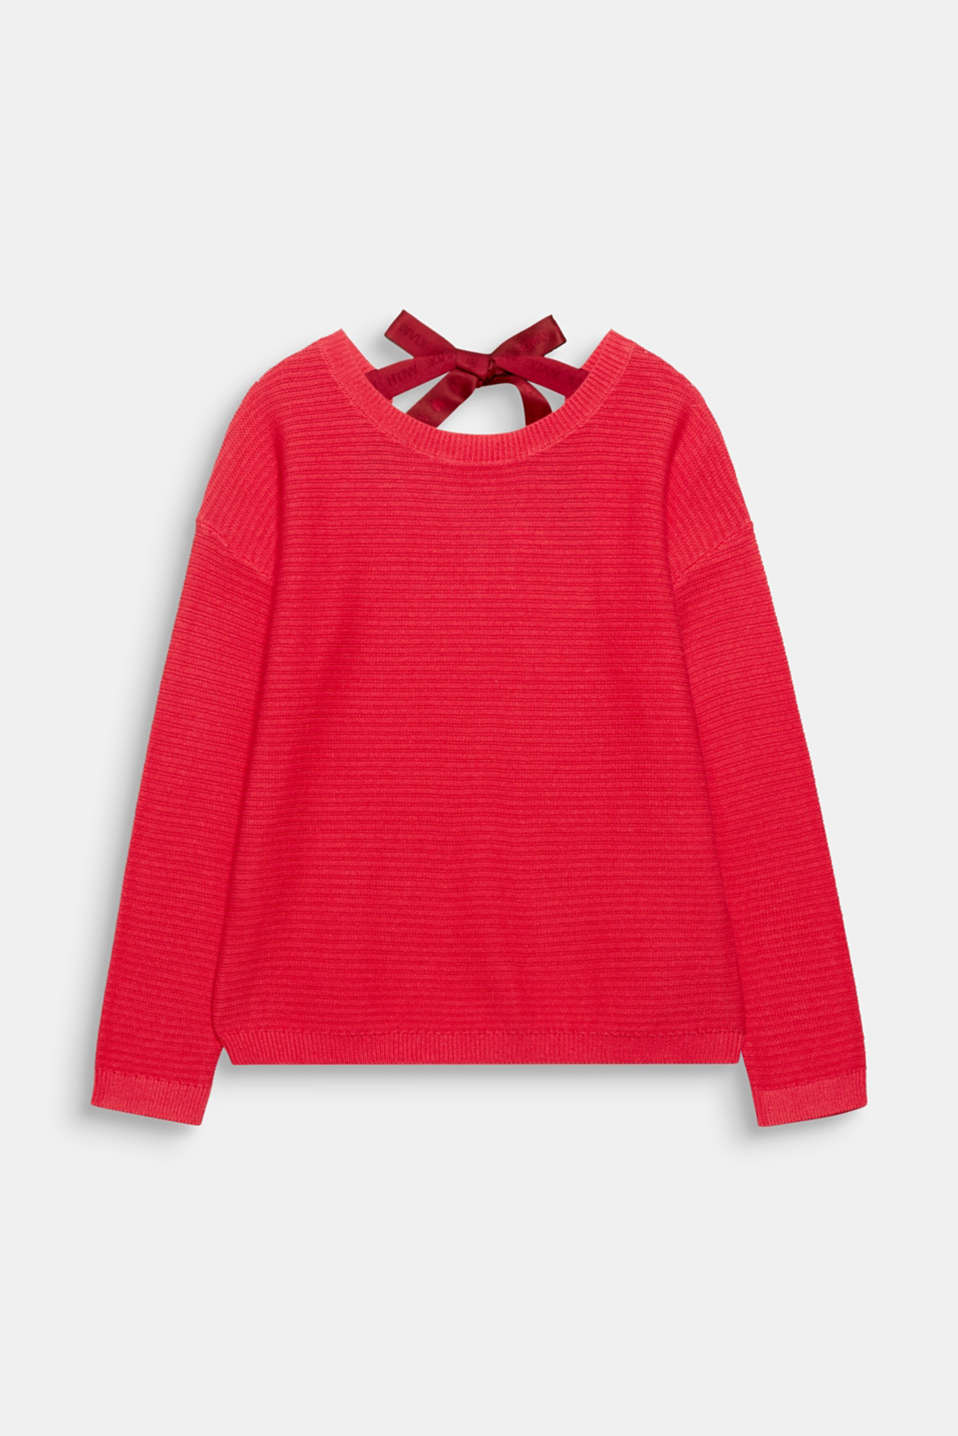 Stylish and casual at the front, pretty and trendy at the back, this textured oversized jumper boasts a bow at the back!